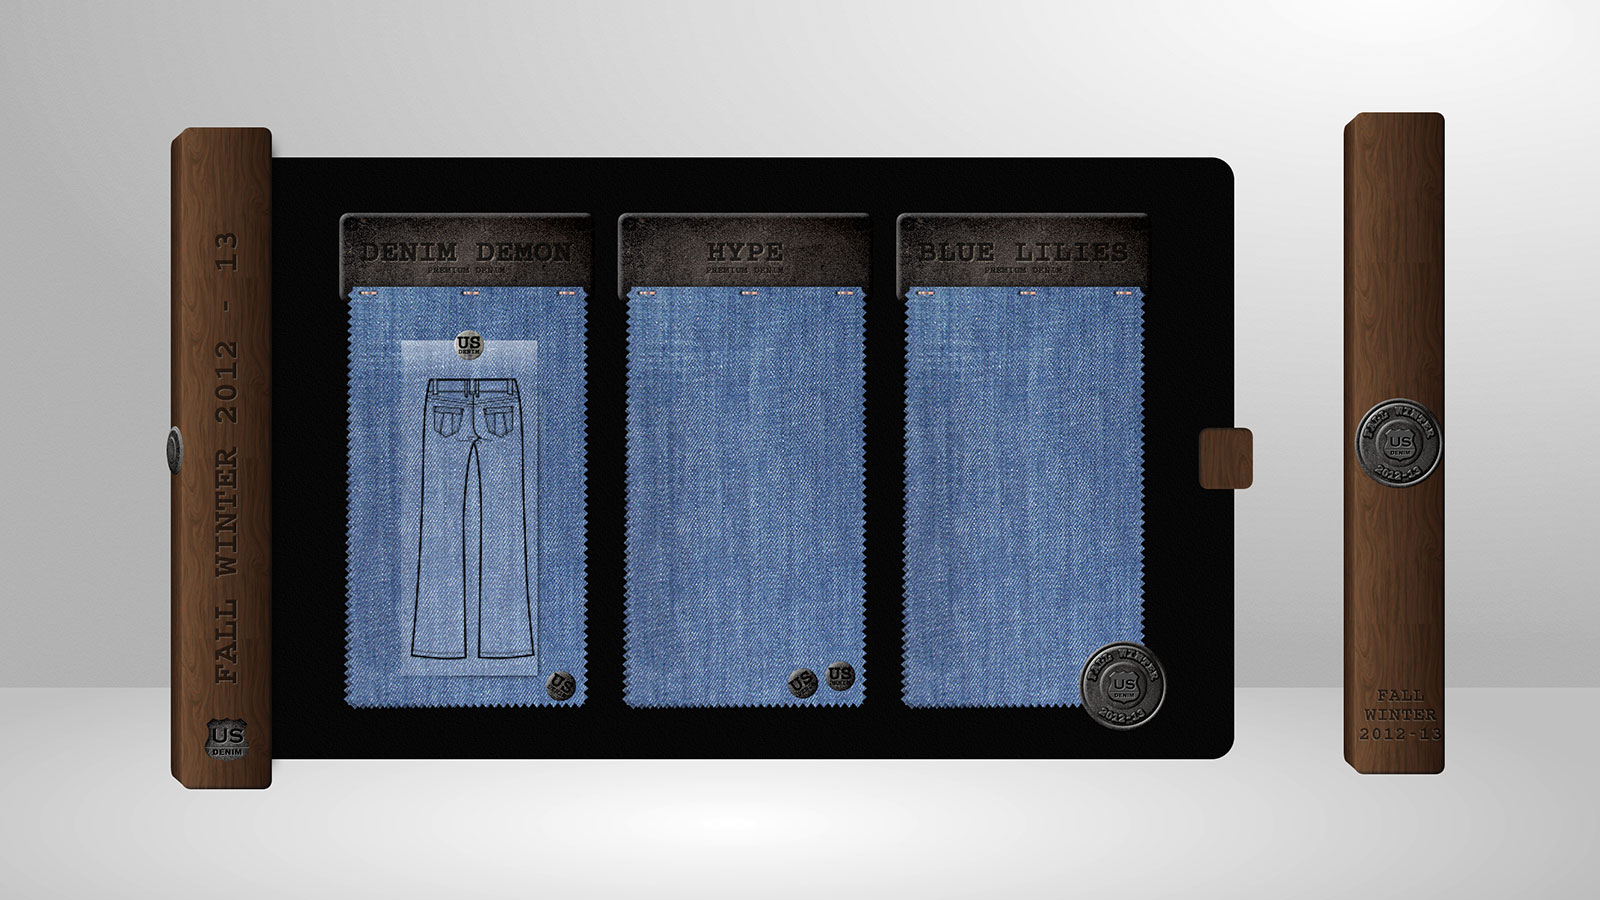 us-denim-graphic-brand-design-web-designer-hiline-lahore-pakistan-010